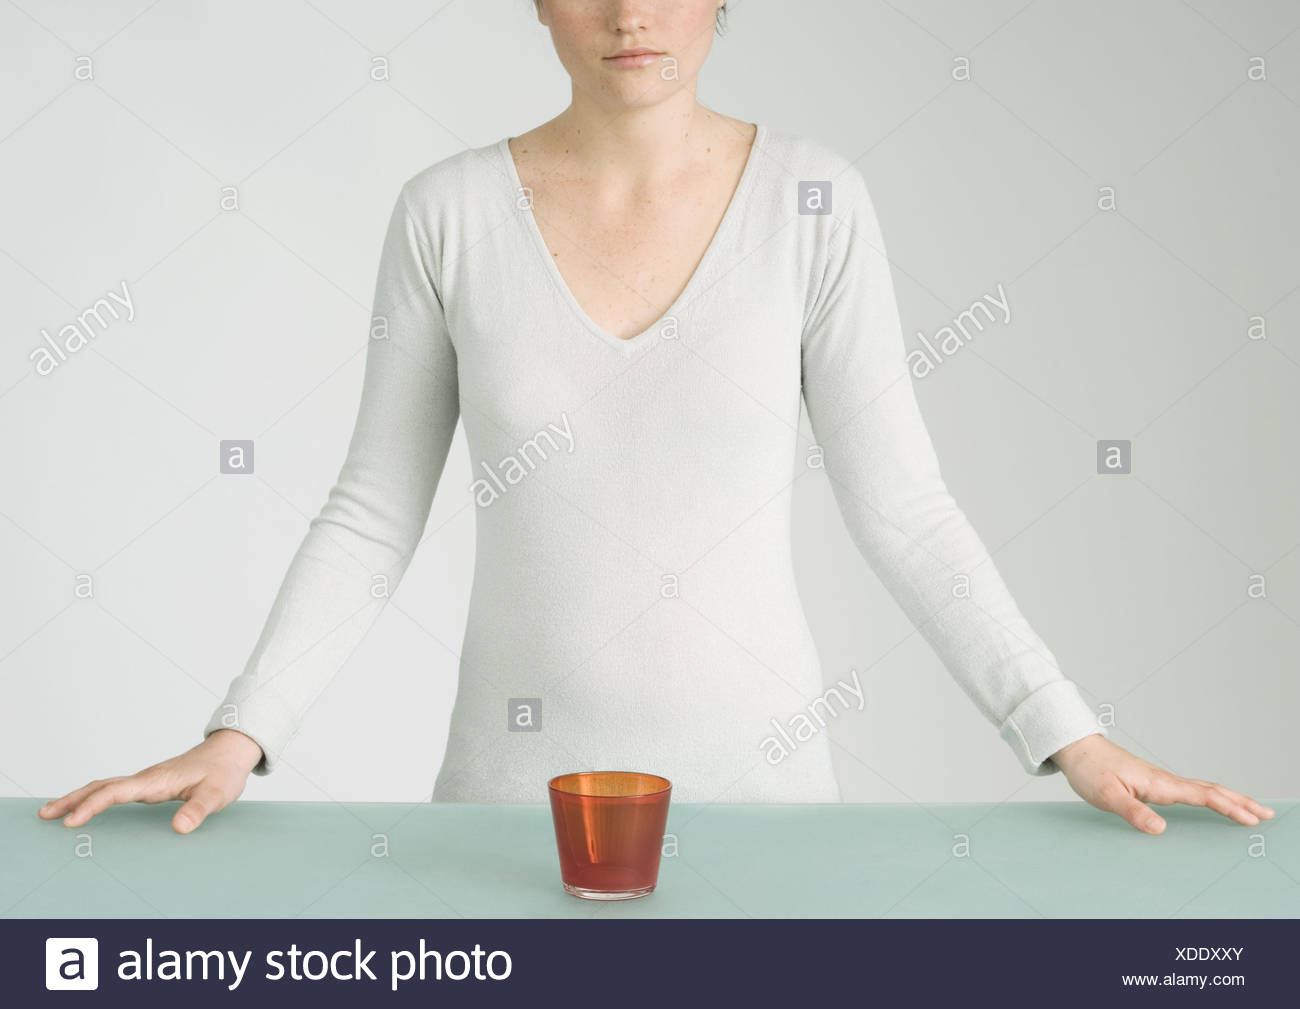 Young woman standing with glass in front of her on table, partial view - Stock Image